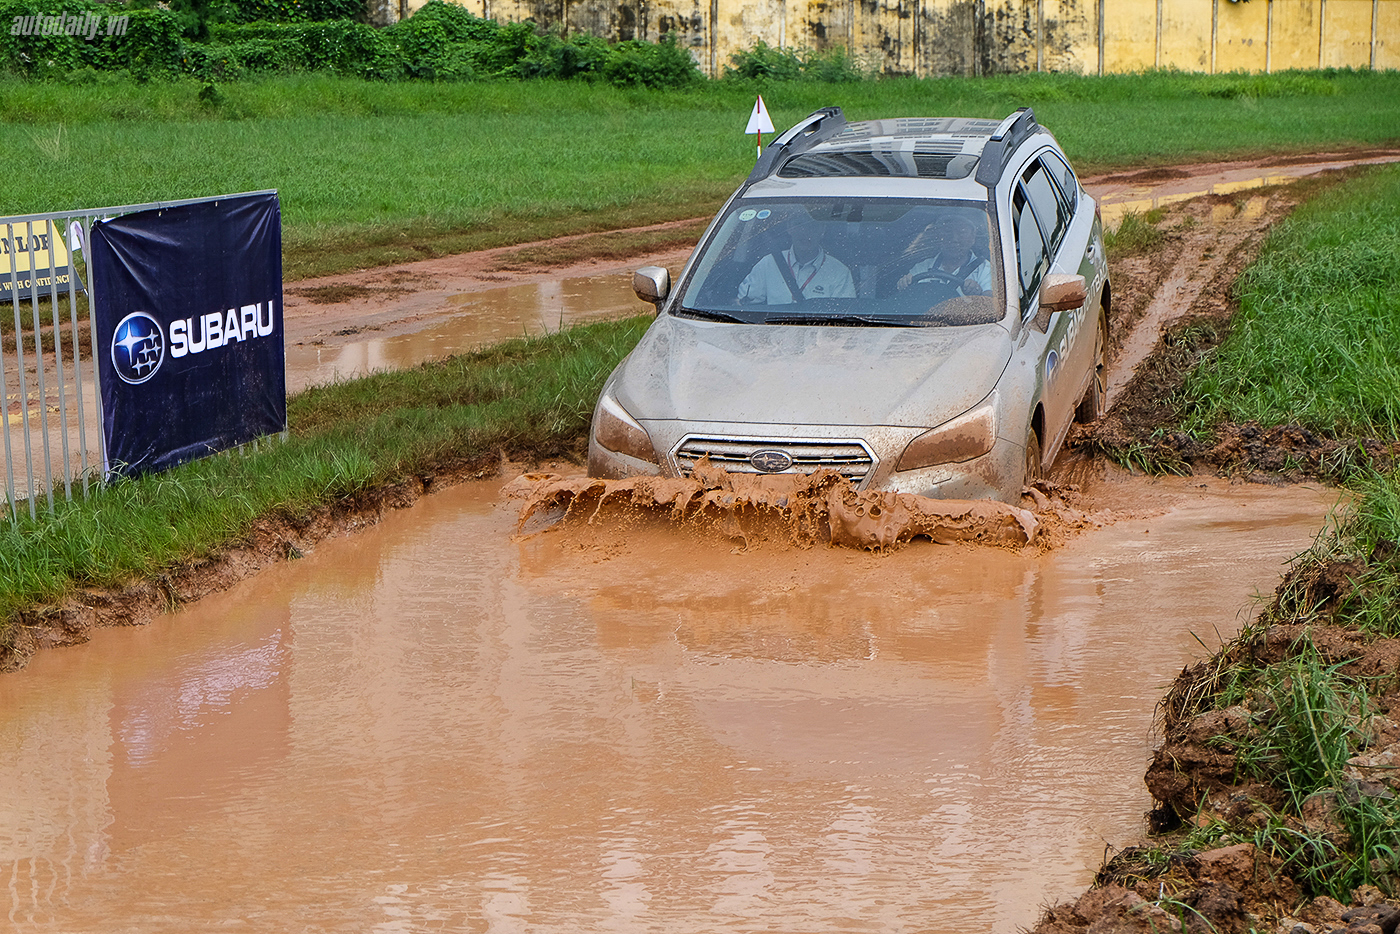 subaru-off-road-19.jpg